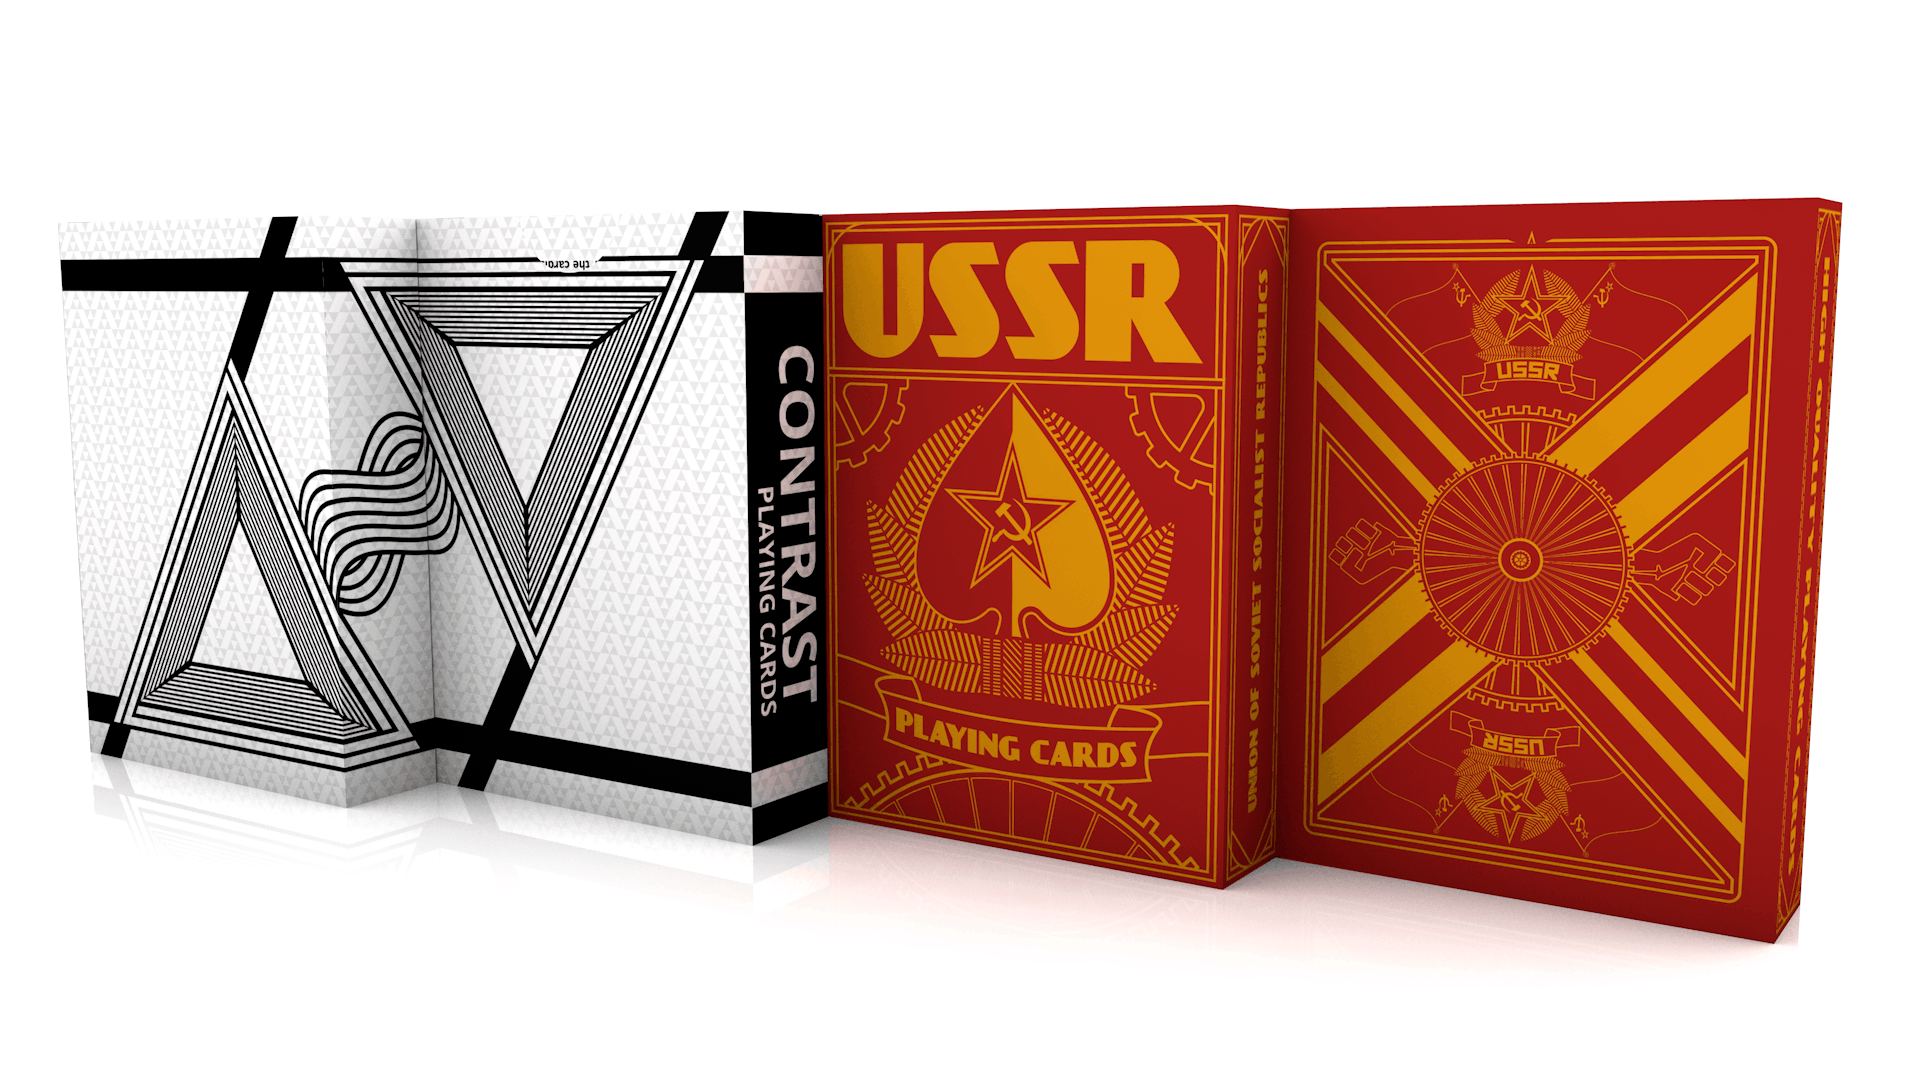 My custom deck Contrast Playing Cards and also a little shot of my USSR Deck. What do you guys think